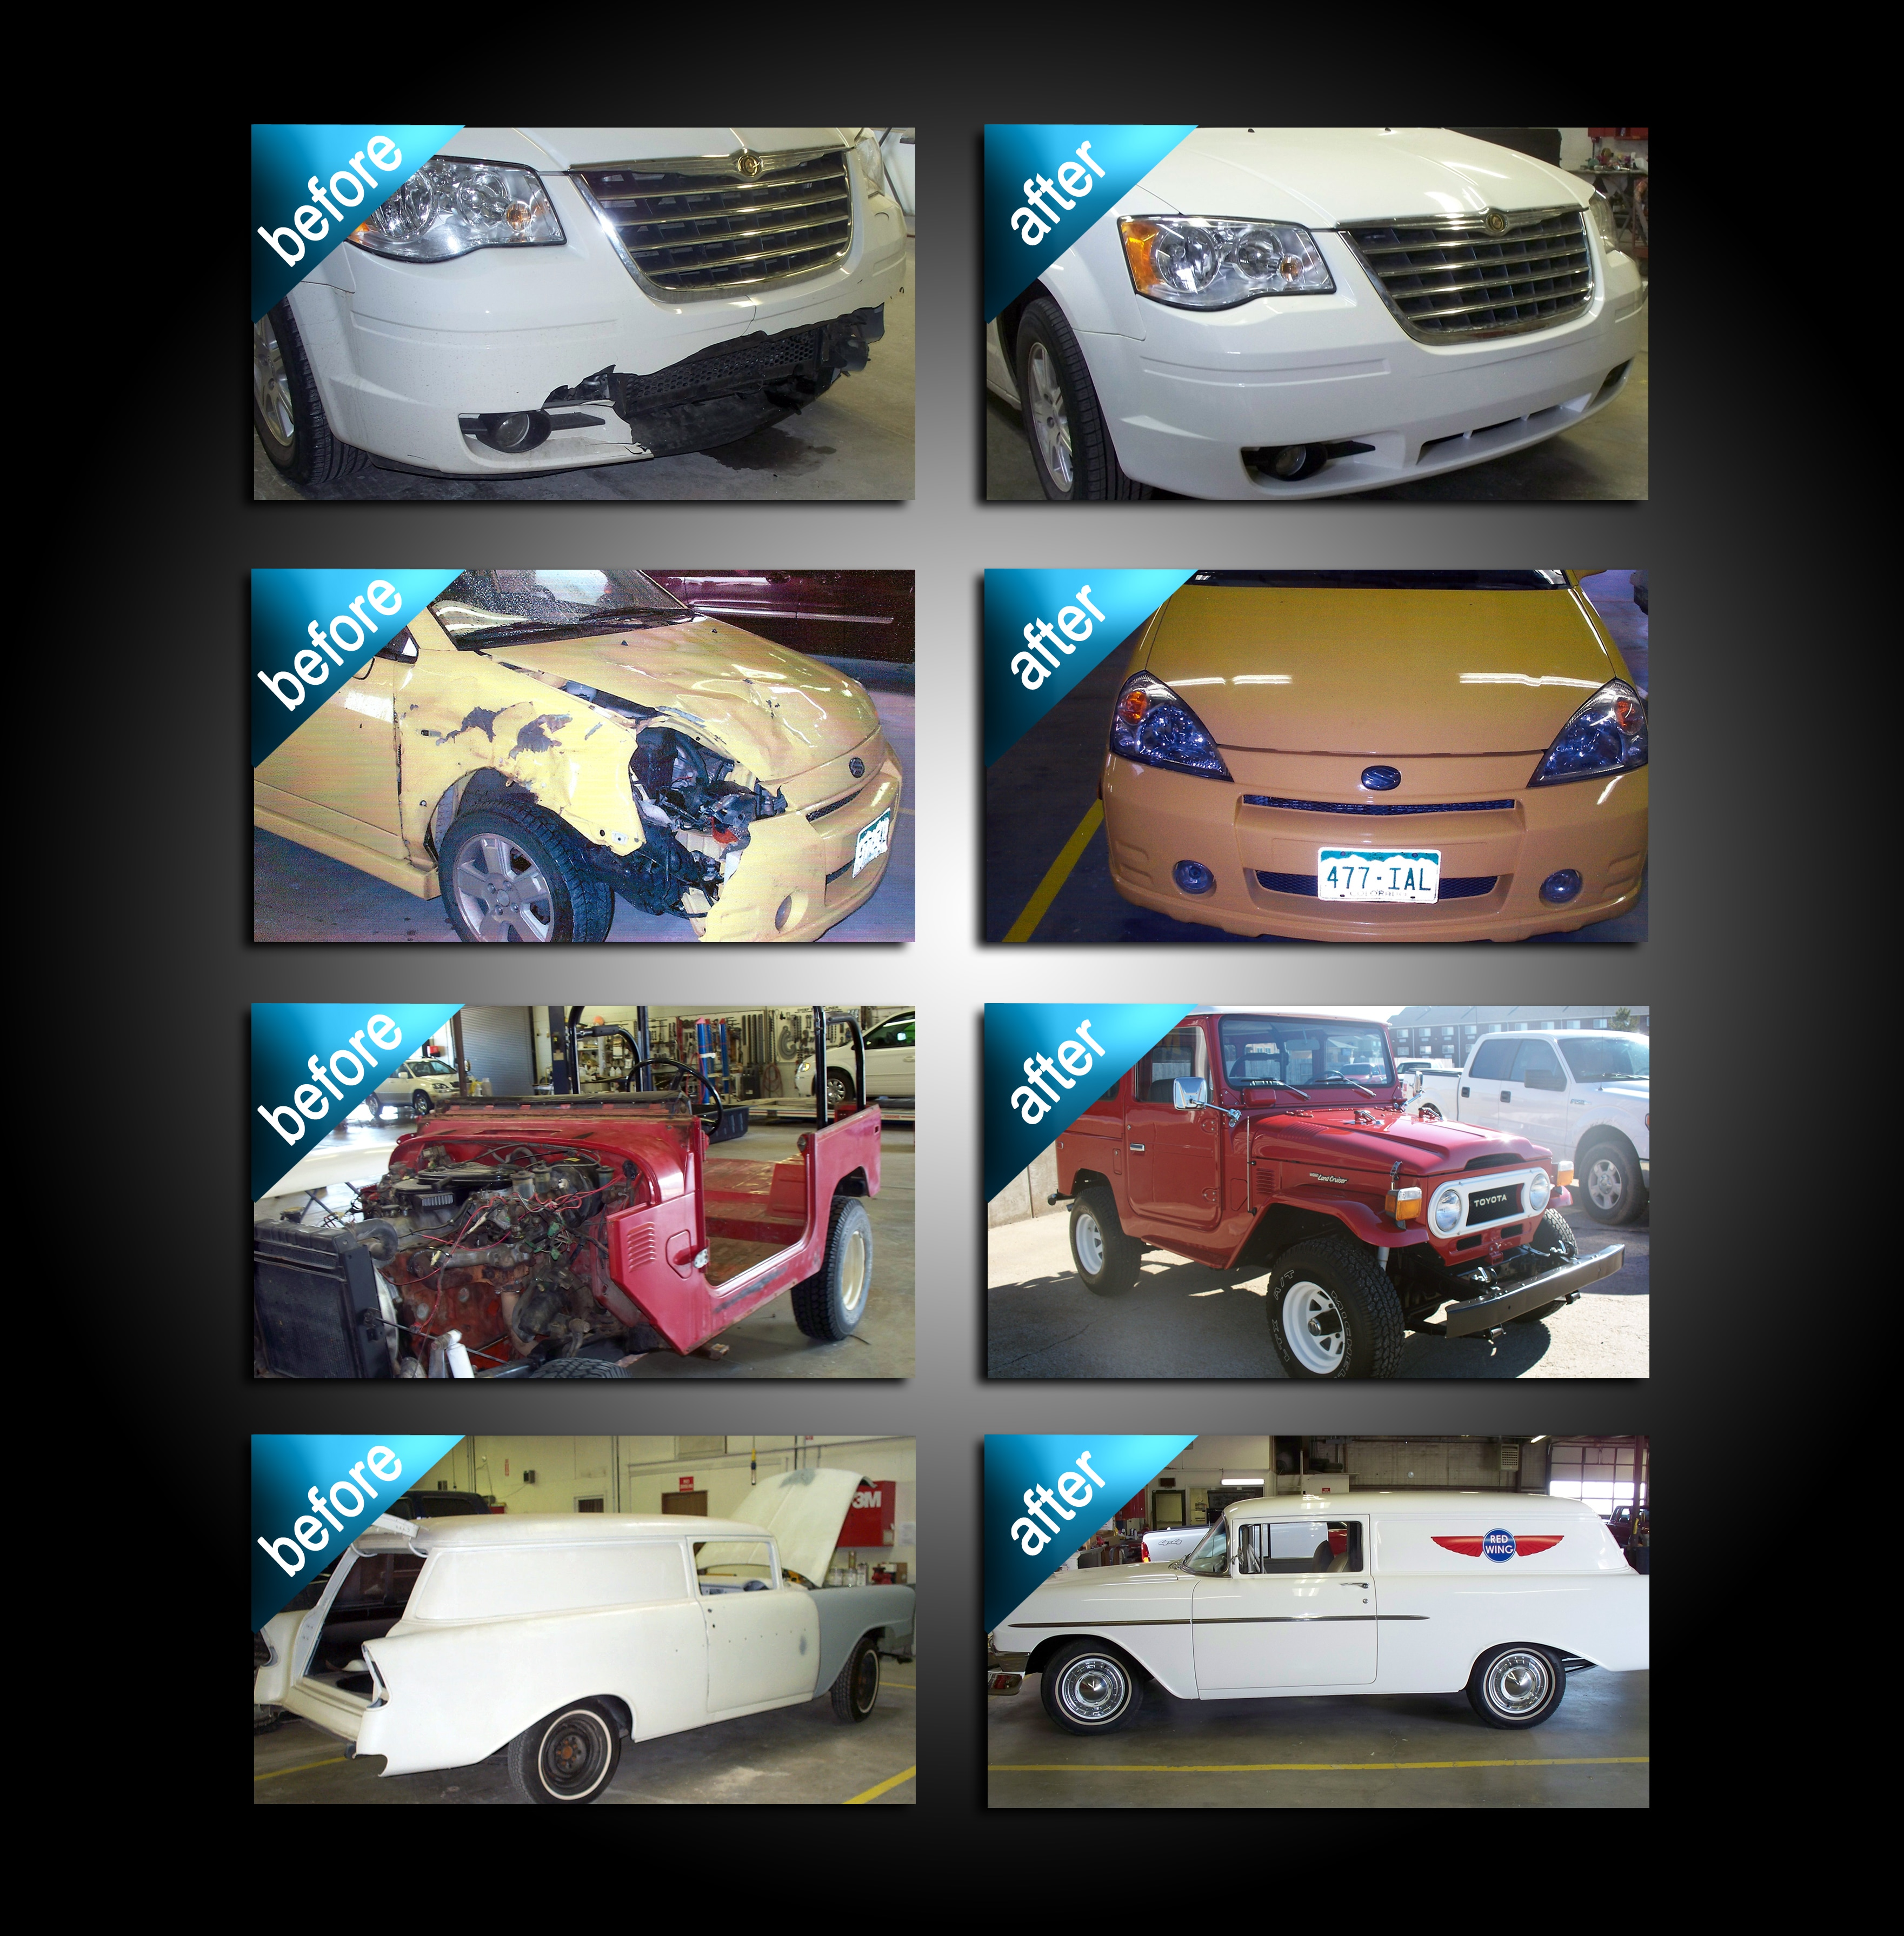 Auto Body Shop Lewis Cdjr Of Hays Hays Ks